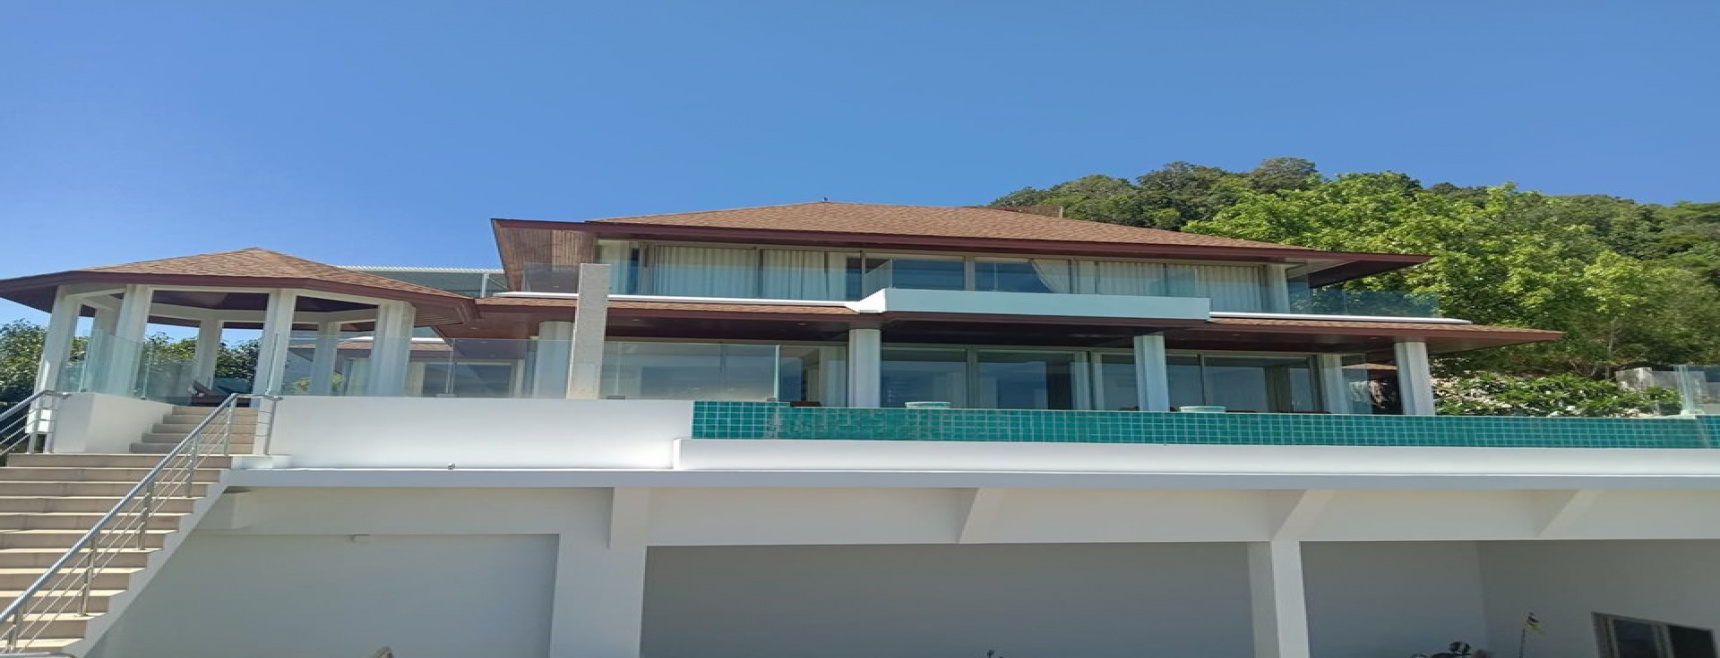 Sea View Villa For Sale Plai Laem, Koh Samui. Narai Kiri (Thai-Real.com)